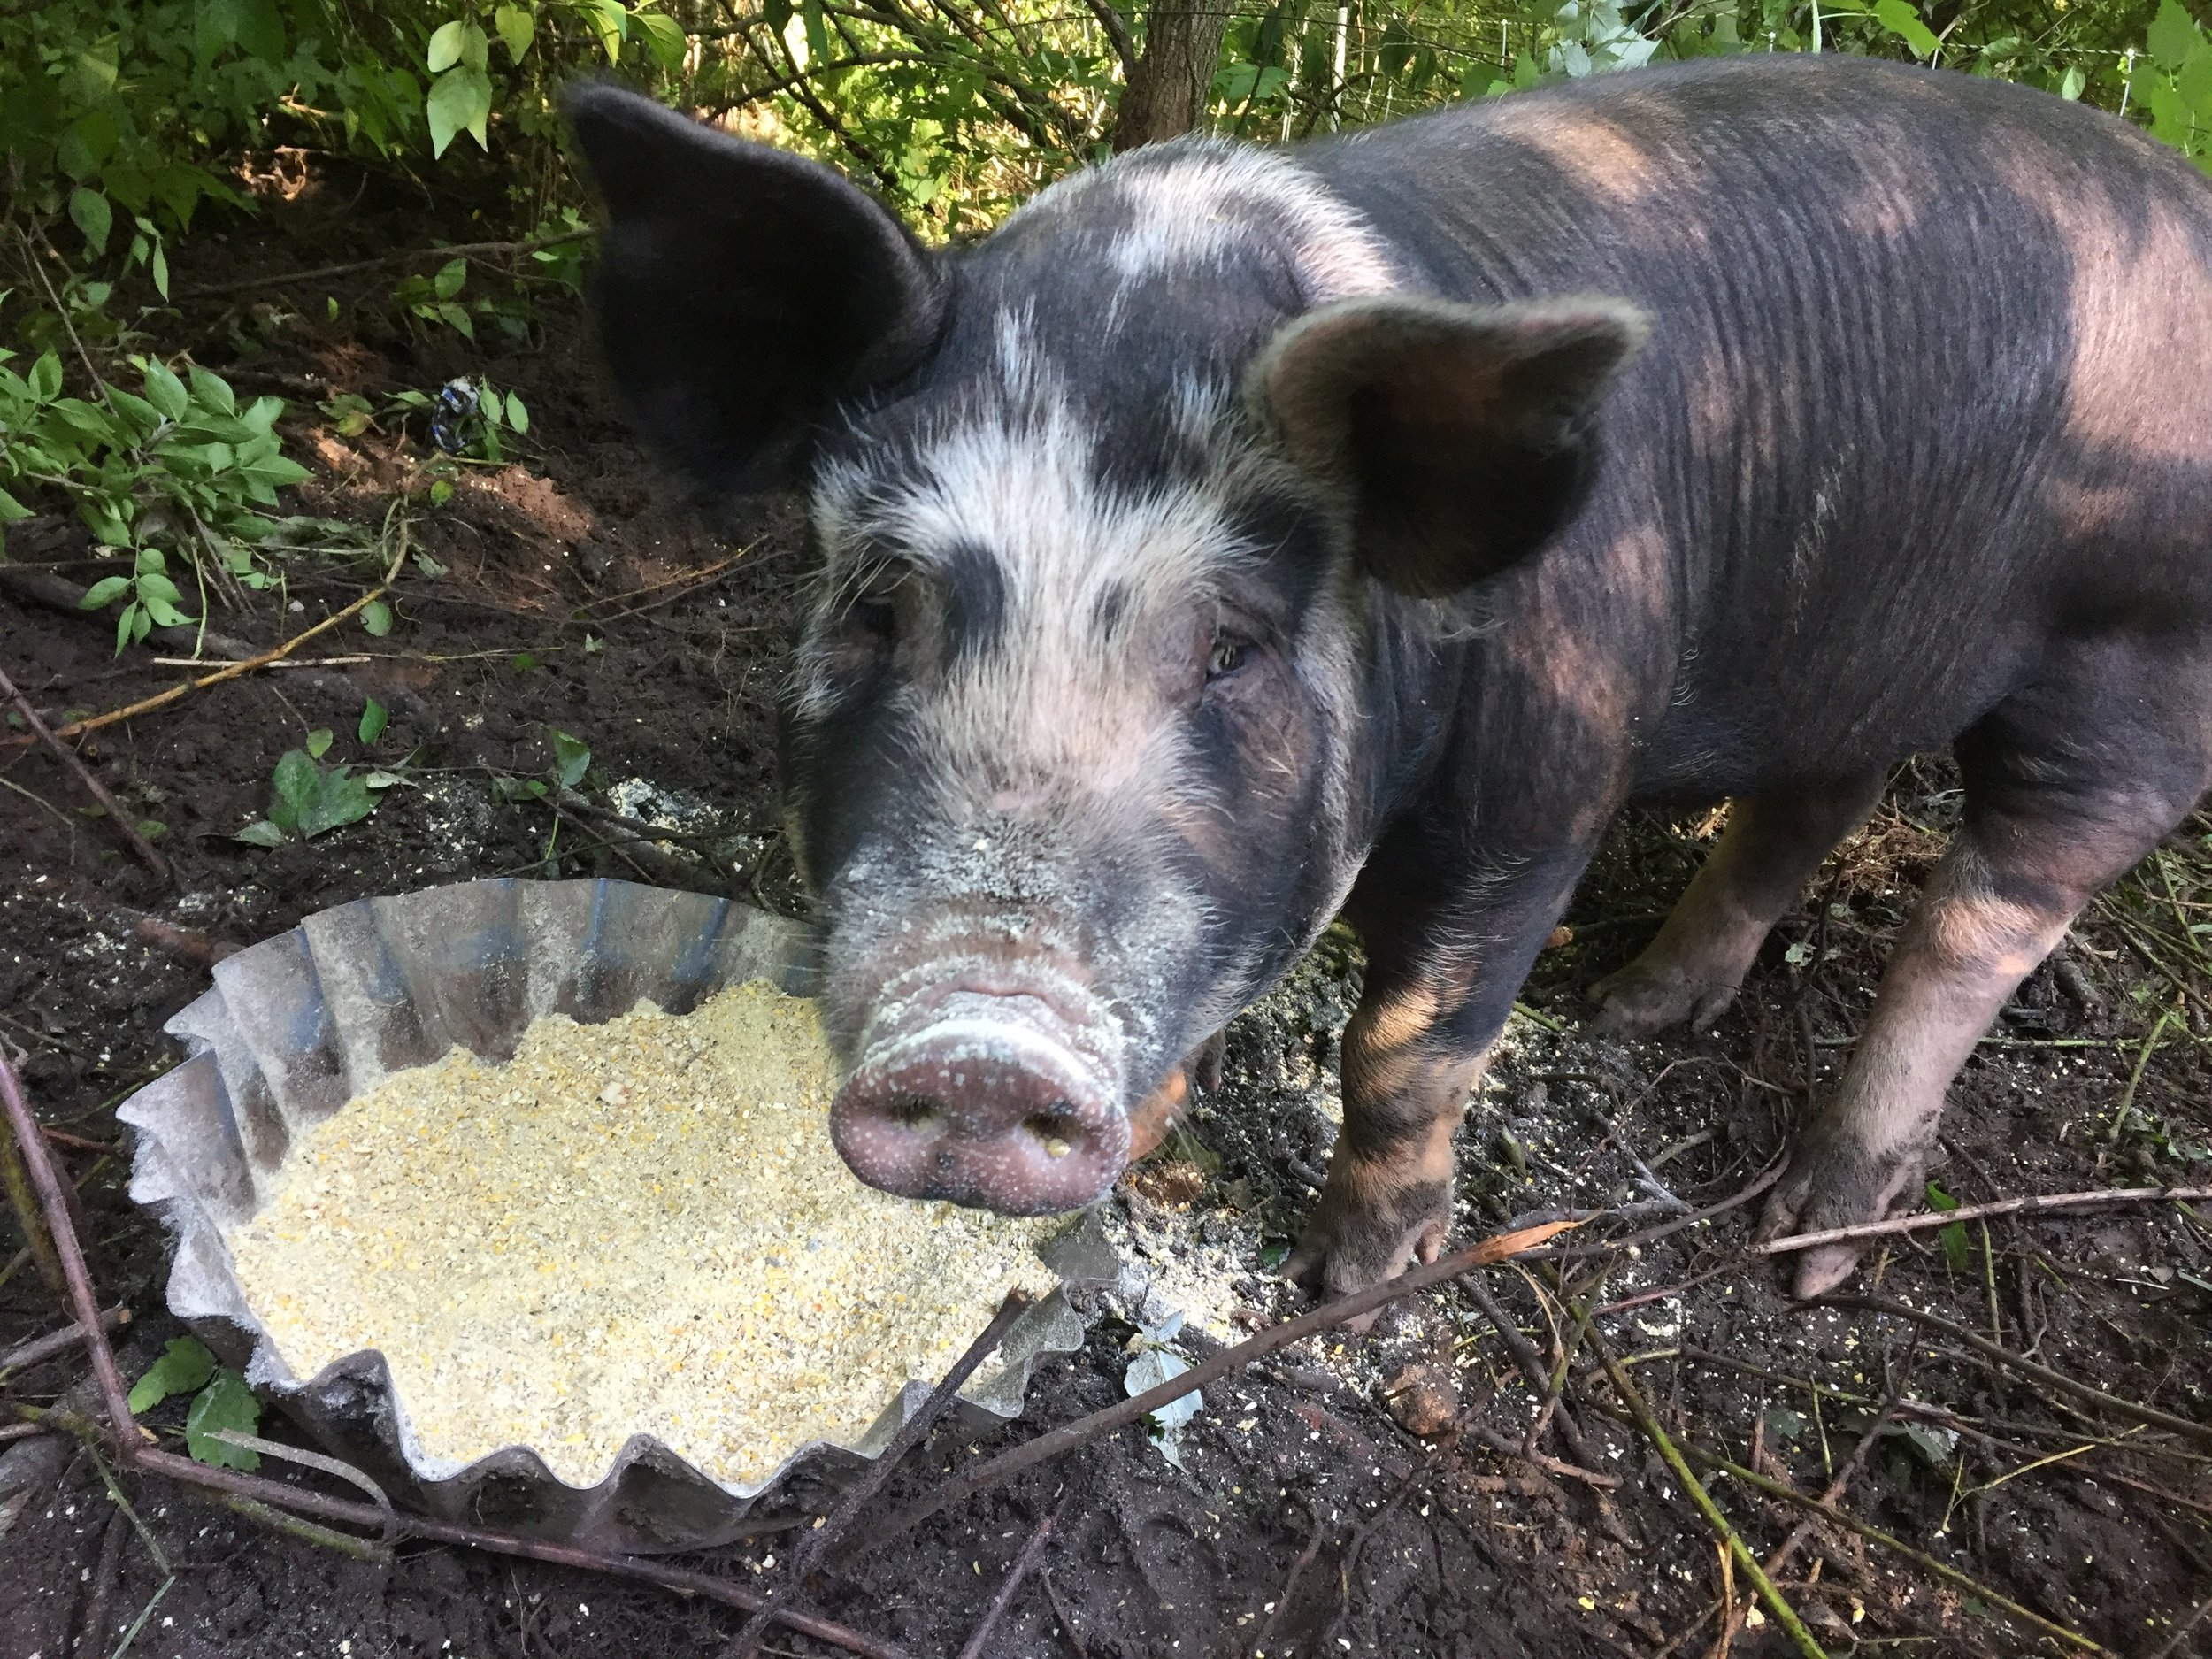 The picture is of a Berkshire hog in the woods, snout toward the camera, having been lifted from the pan of organic feed.  It is unutterably adorable.